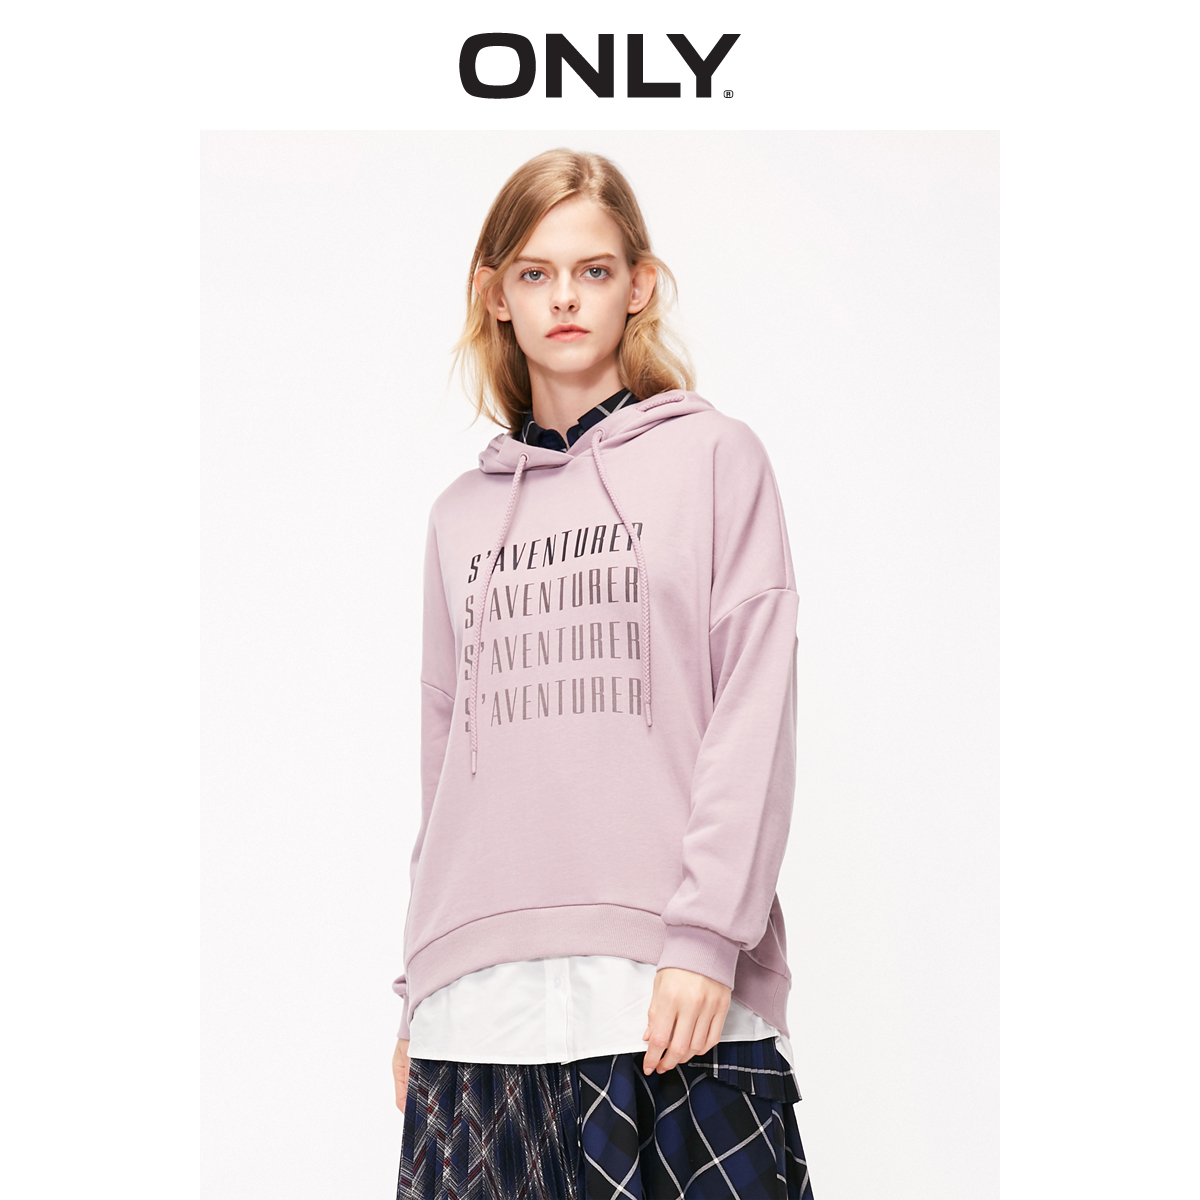 ONLY Women's Letter Print Fake Two-piece Spliced Hooded With Drawstring Hoodie | 11919S530